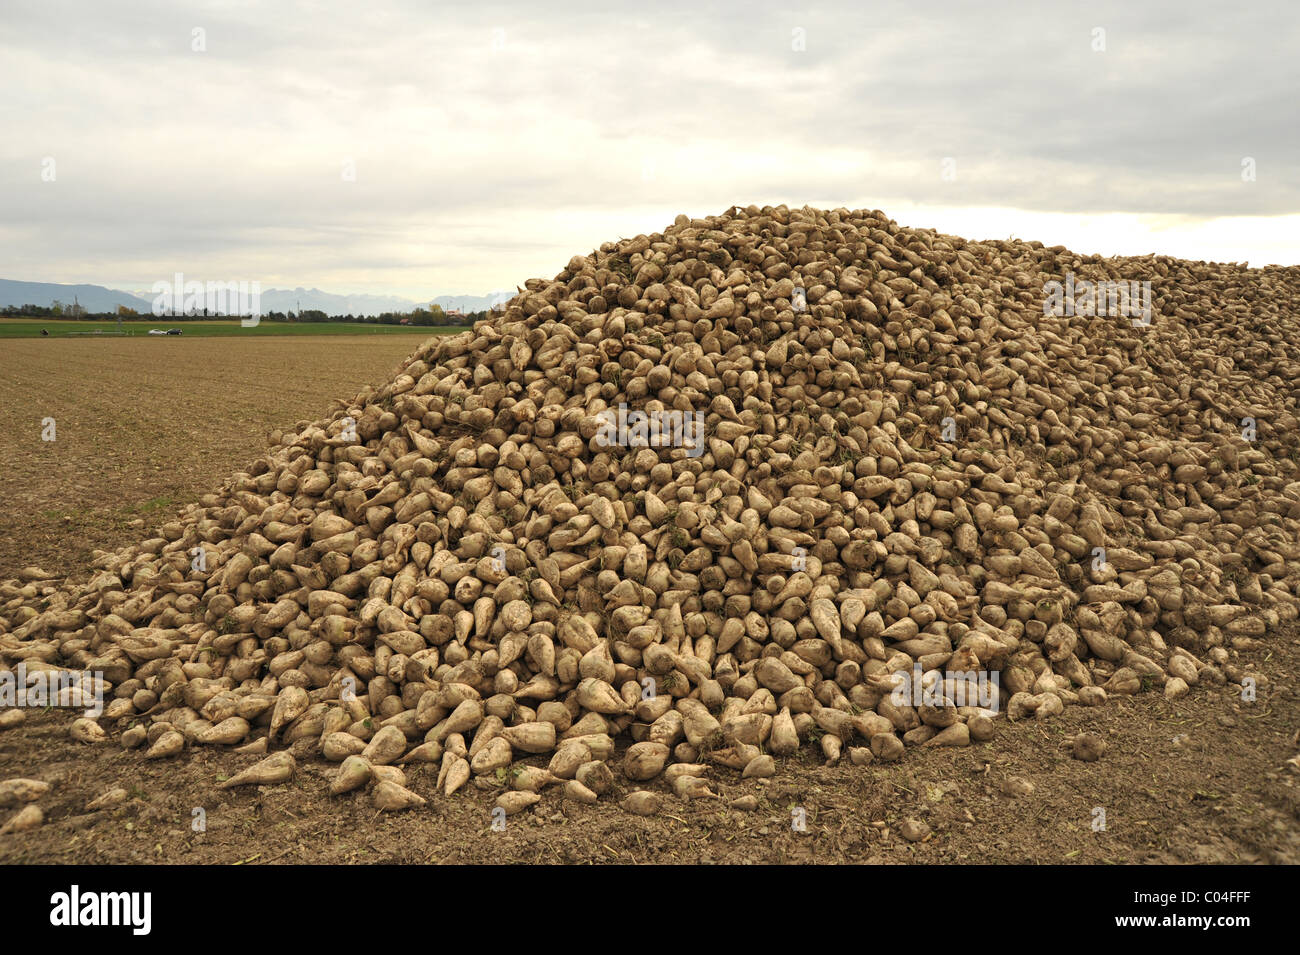 Sugar beet freshly harvested from the field. - Stock Image